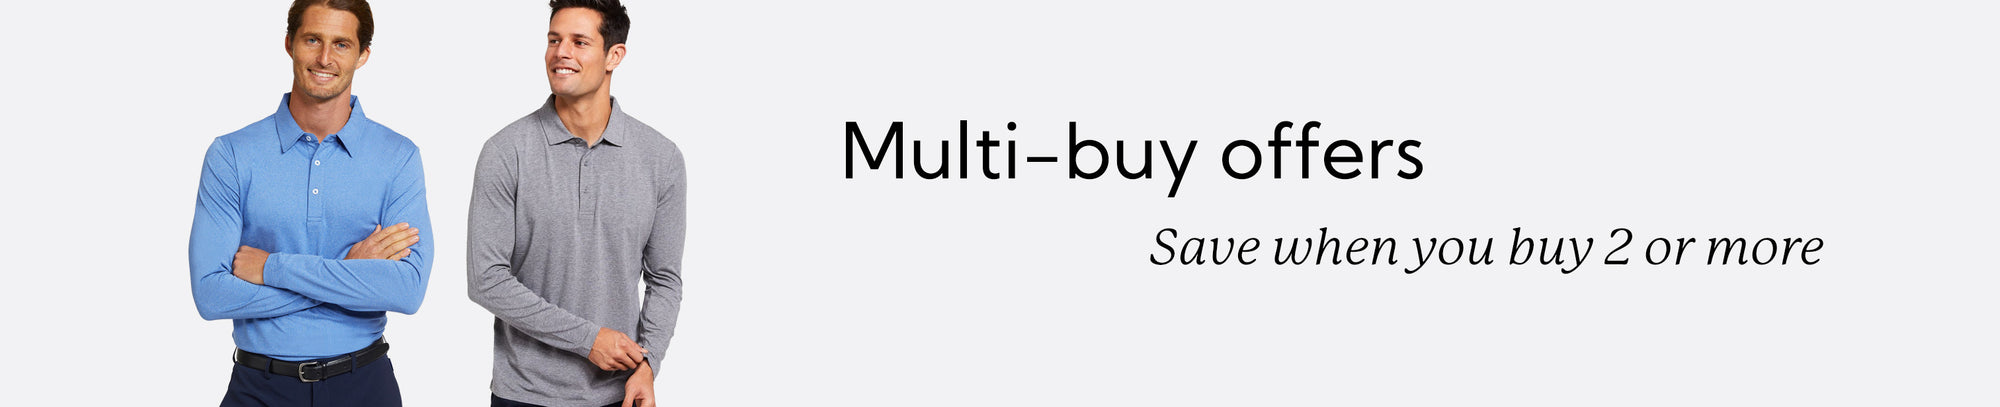 Multi-buy offers for Men: Save when you buy 2 or more